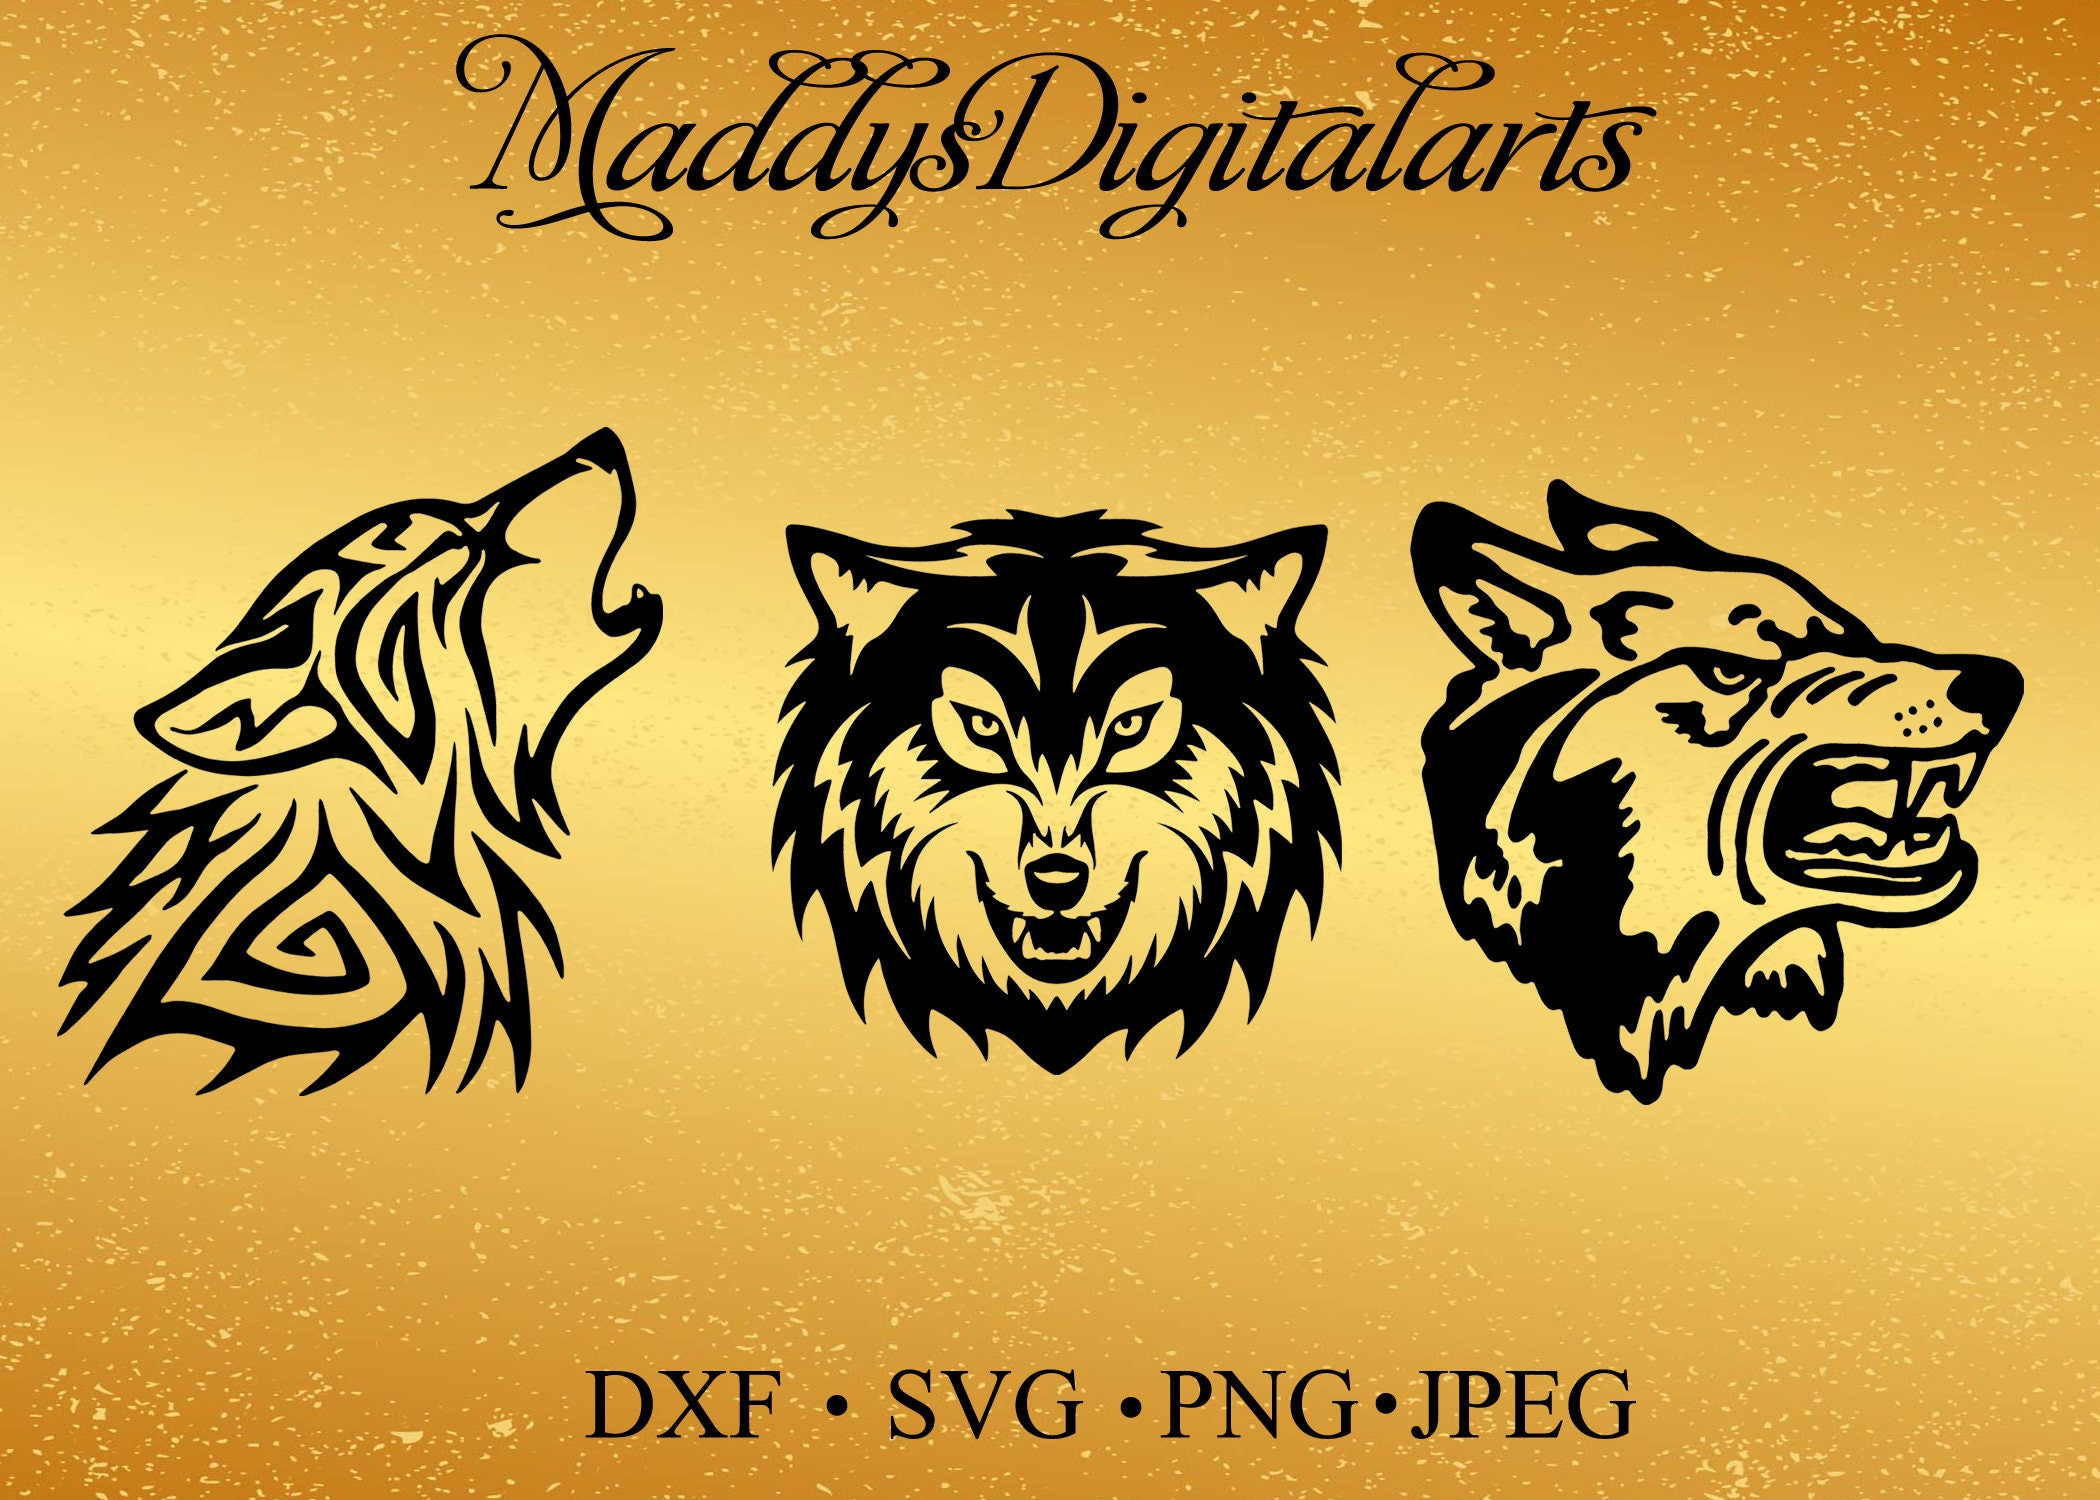 wolf svg, wolf dxf, animal svg, jpg, png, dxf cutting files, clip ...